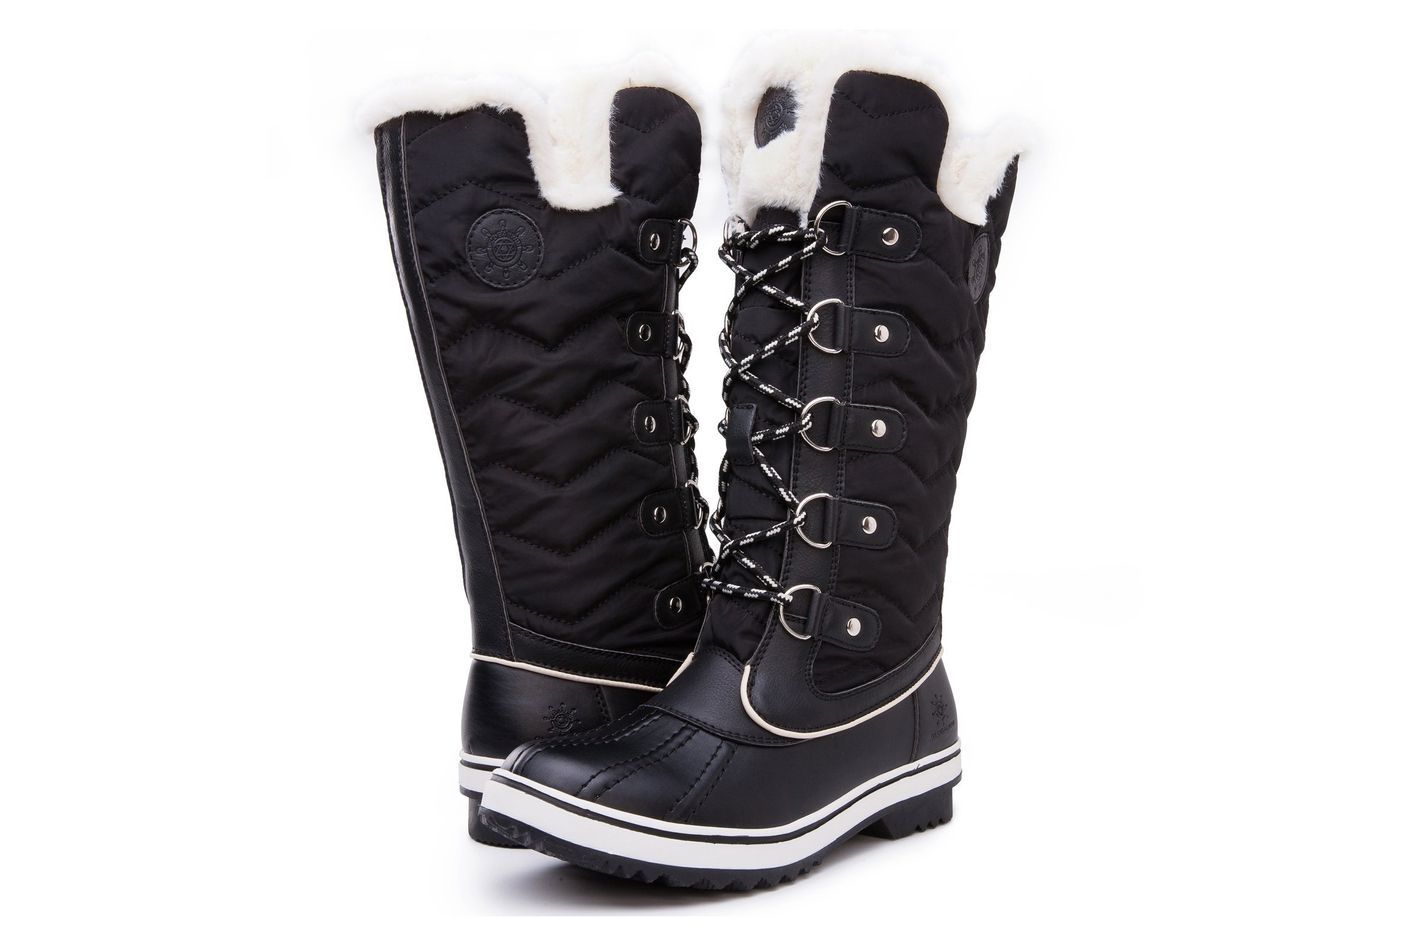 7d9459126e0b Kingshow Women s Global Win Waterproof Winter Boots